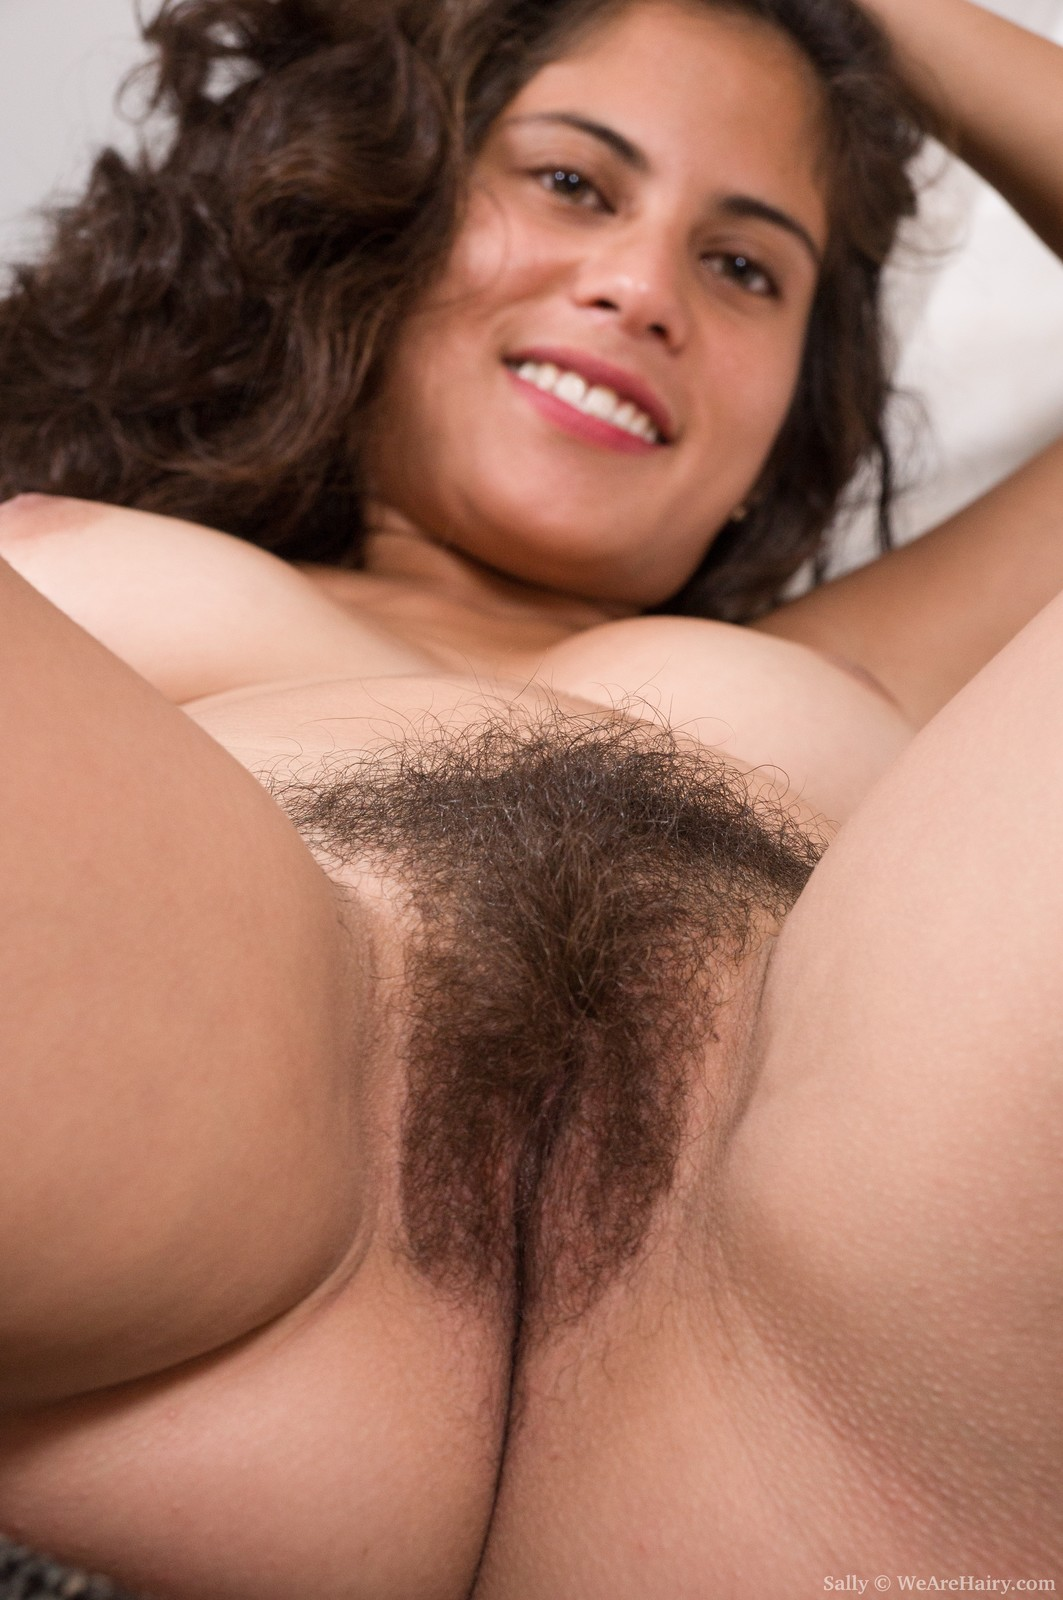 Need girls hairy vagina did great